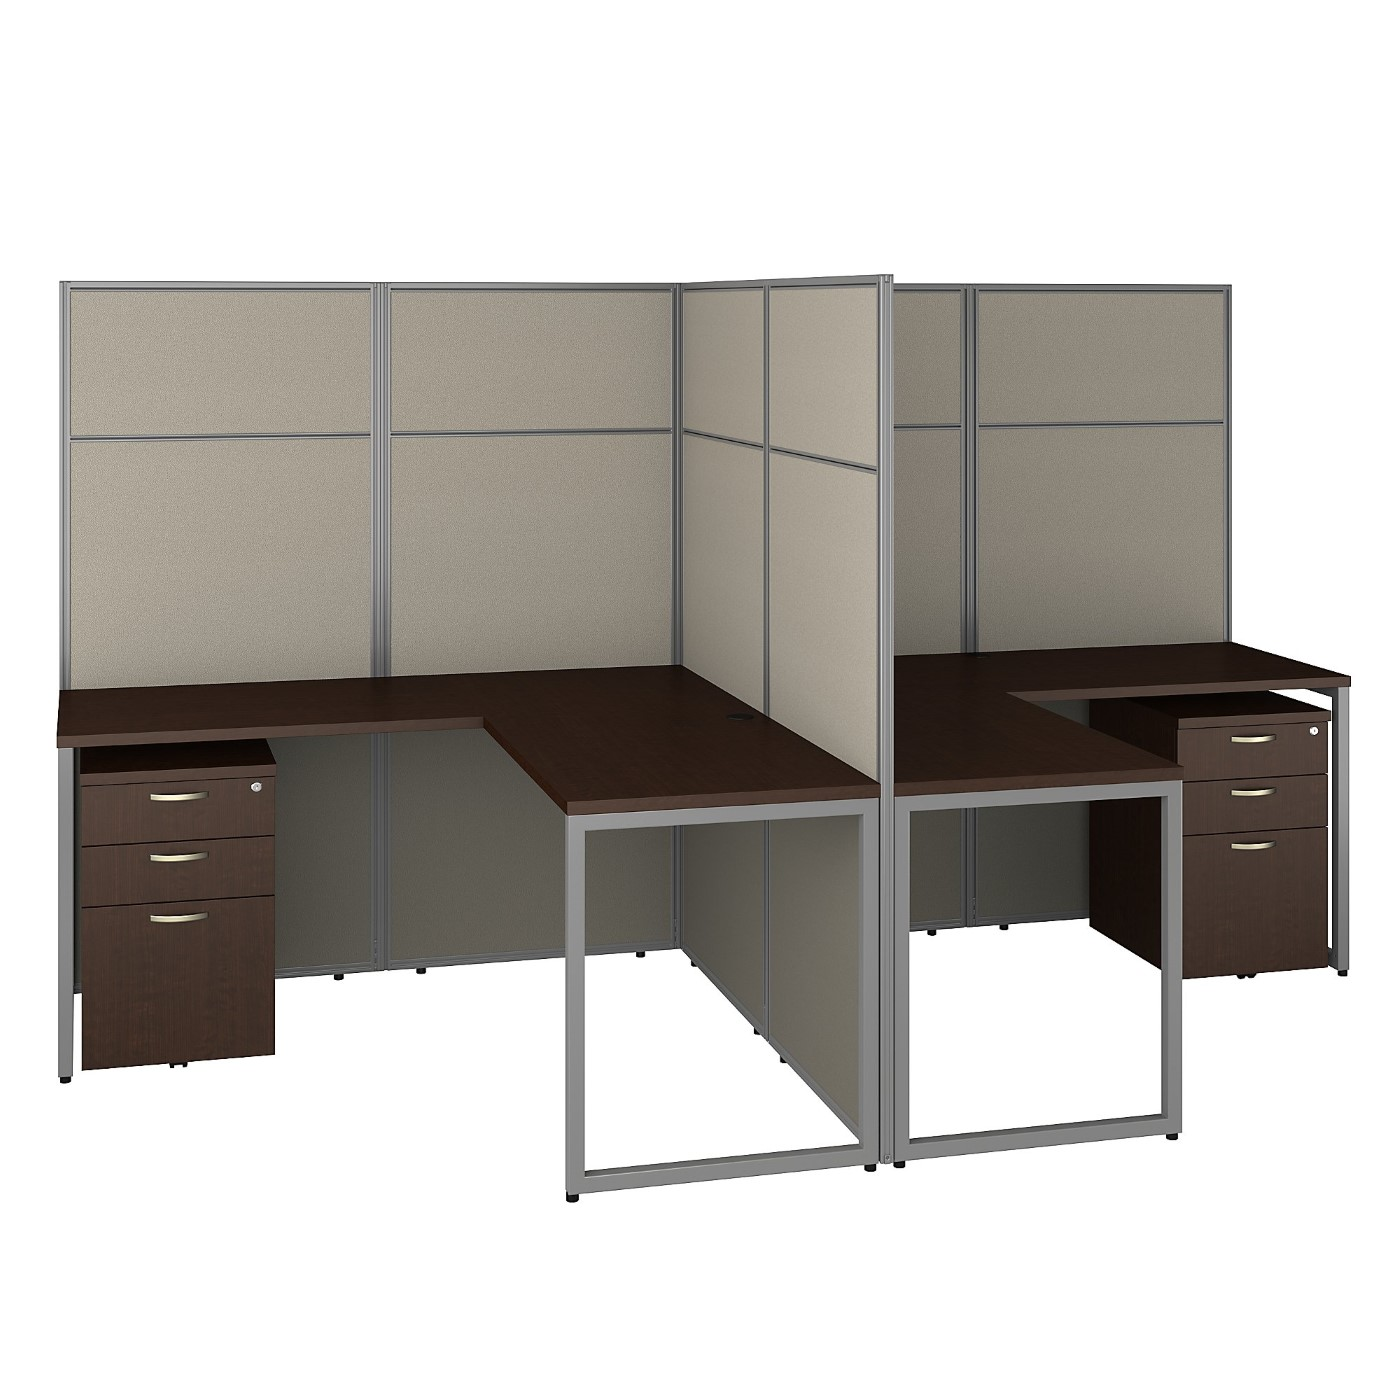 <font color=#c60><b>BUSH BUSINESS FURNITURE EASY OFFICE 60W 2 PERSON L SHAPED CUBICLE DESK WITH DRAWERS AND 66H PANELS. FREE SHIPPING 30H x 72L x 72W</font></b>